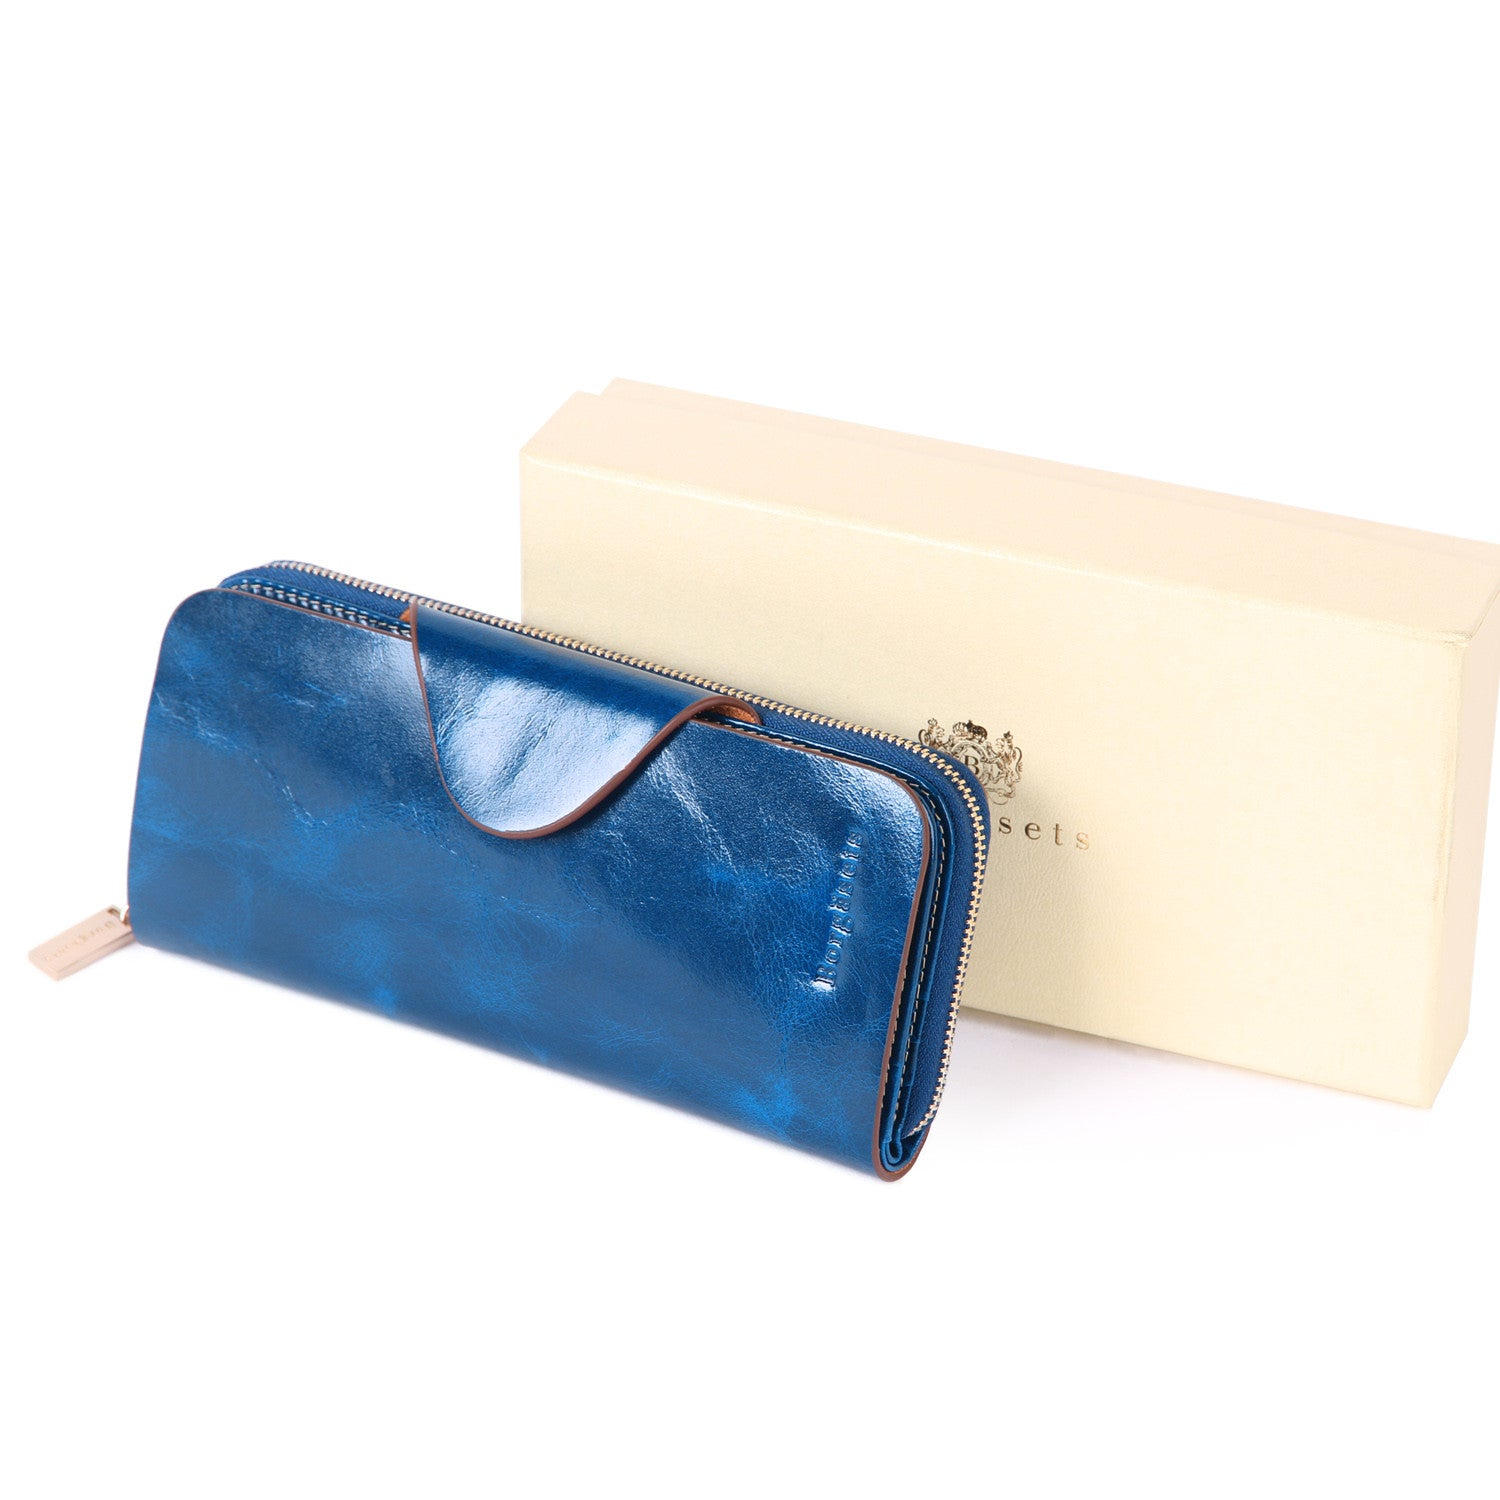 Grande Women's RFID Blocking Wallet Zip Trifold Leather Purse Clutch Blue - Borgasets